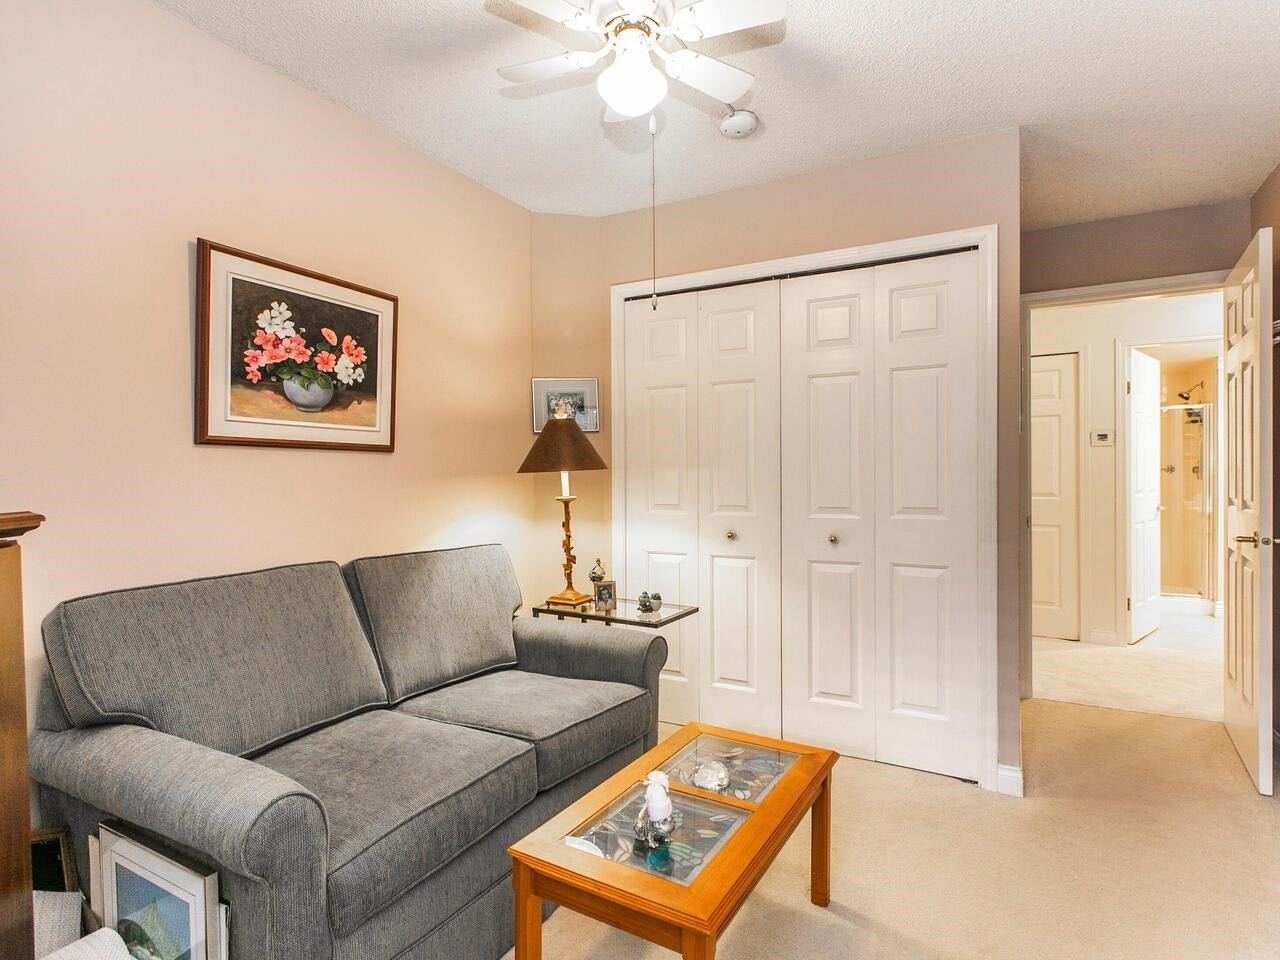 104 2800 CHESTERFIELD AVENUE - Upper Lonsdale Apartment/Condo for sale, 2 Bedrooms (R2603260) - #20